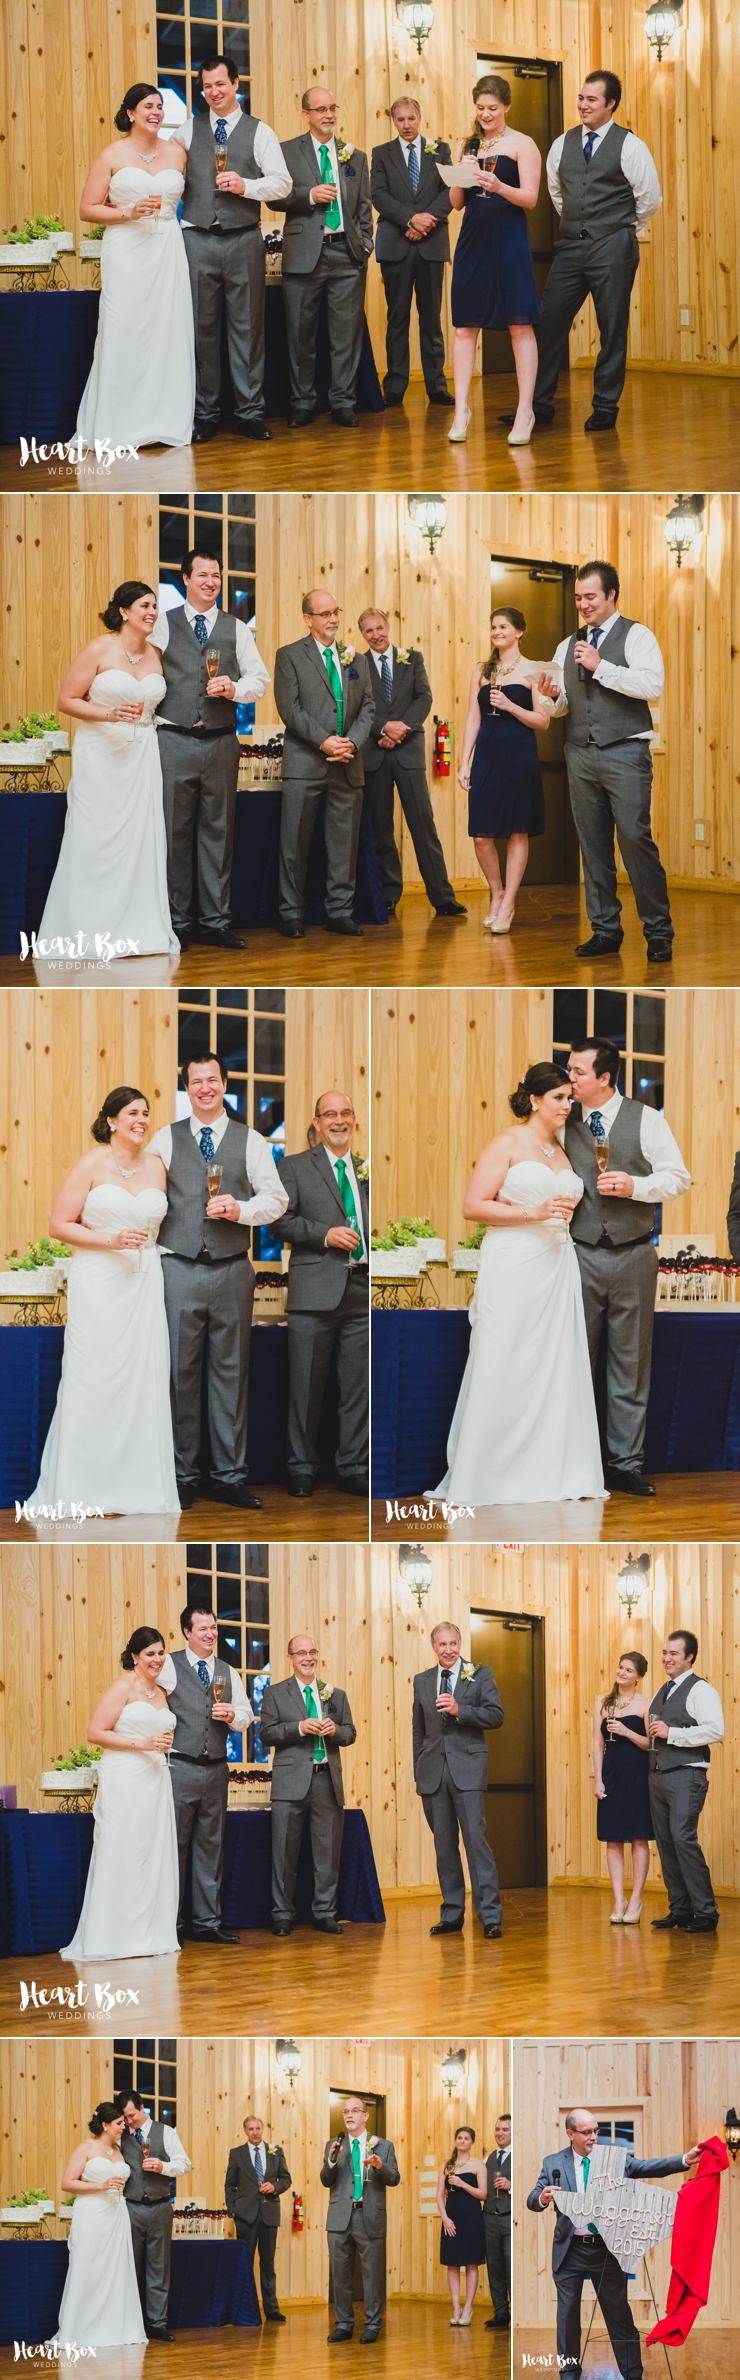 Waggoner Wedding Collages 15.jpg